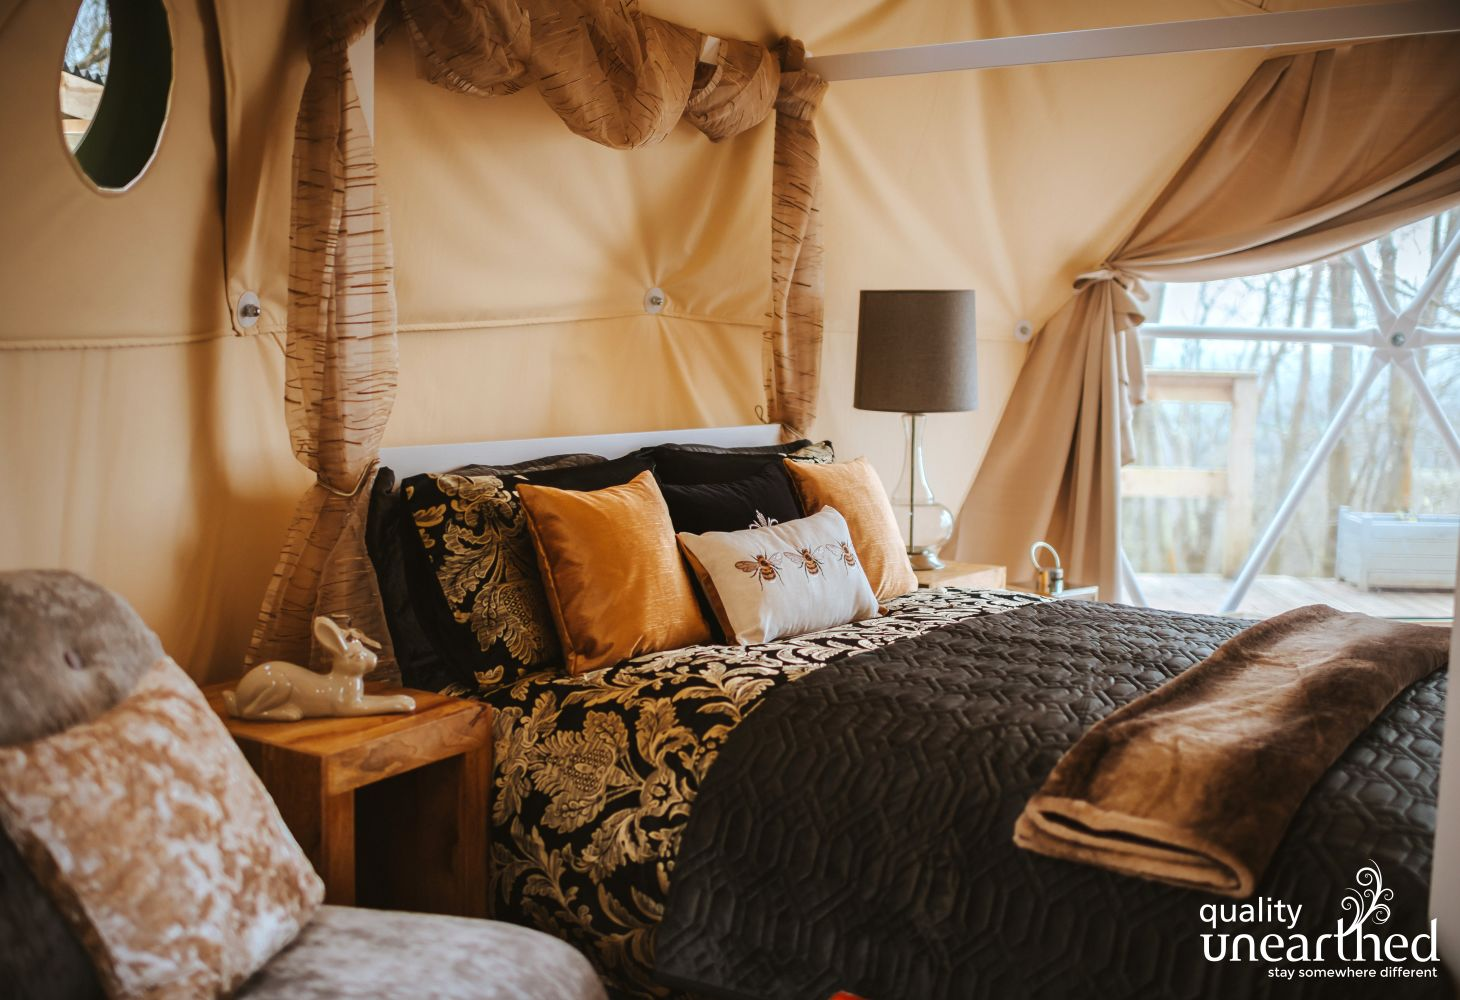 Sumptuous, rich bedding welcomes min 3 night stays in the summer at this perfect romantic geodome